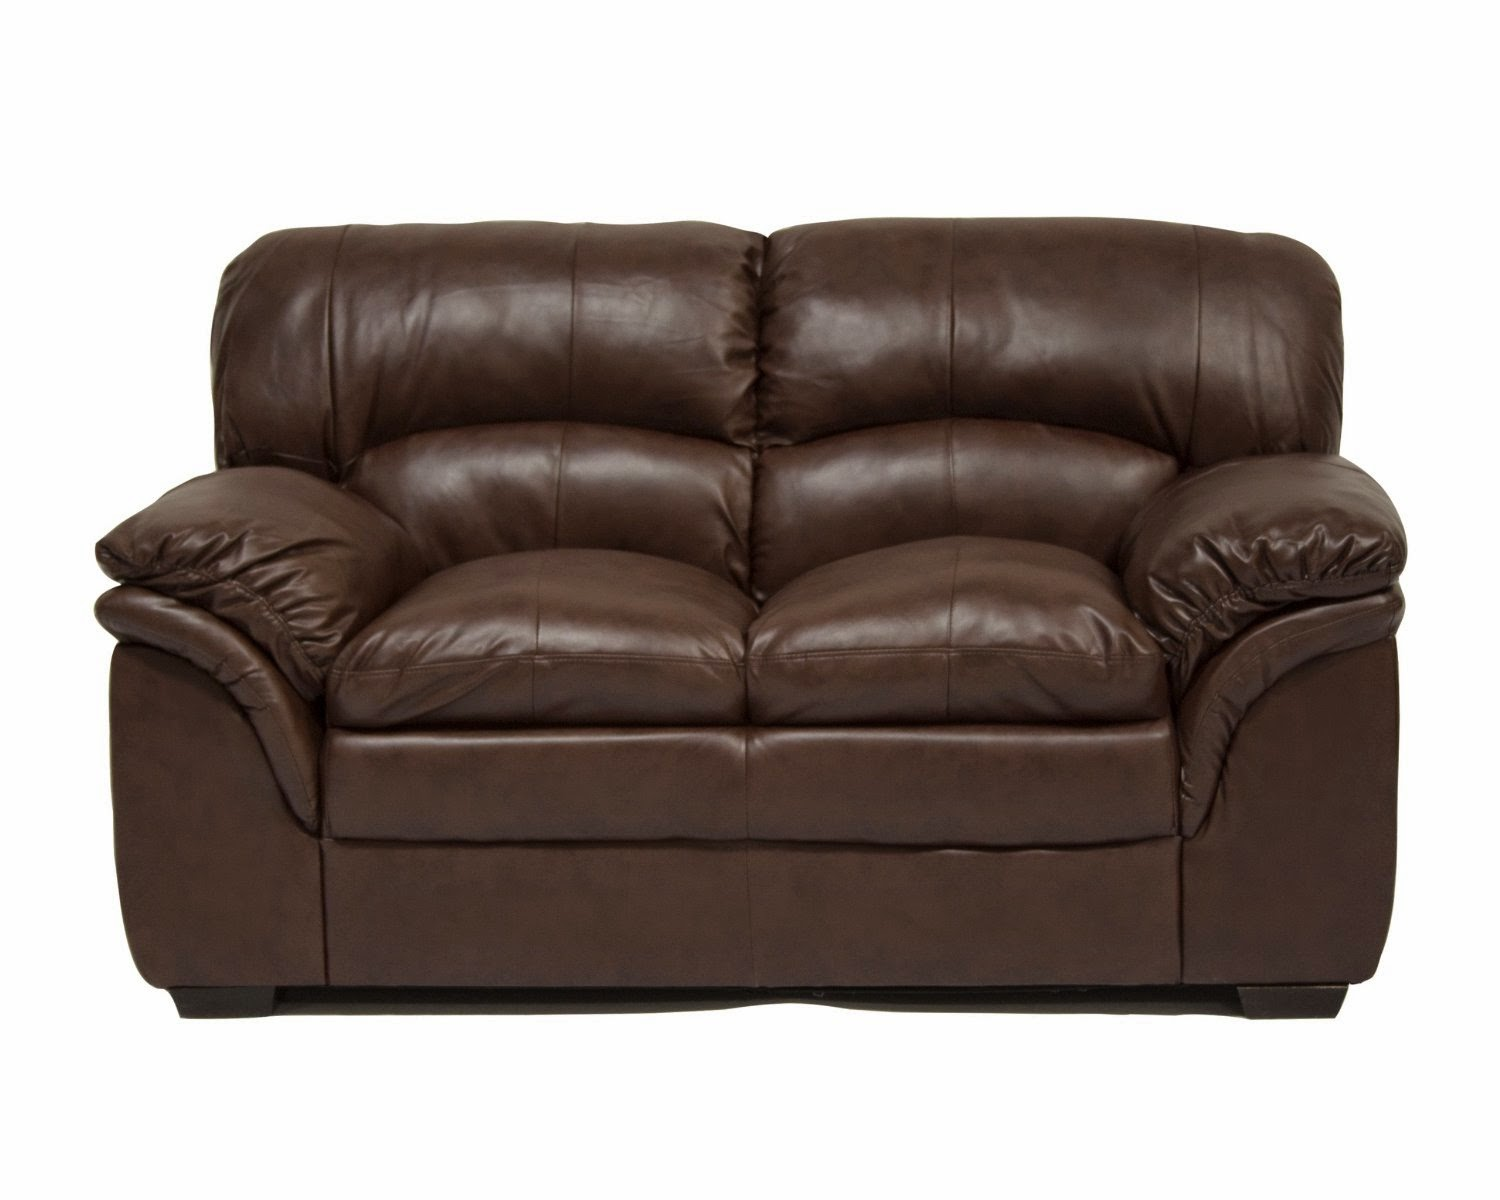 Cheap reclining sofas sale 2 seater leather recliner sofa for Couches and sofas for sale